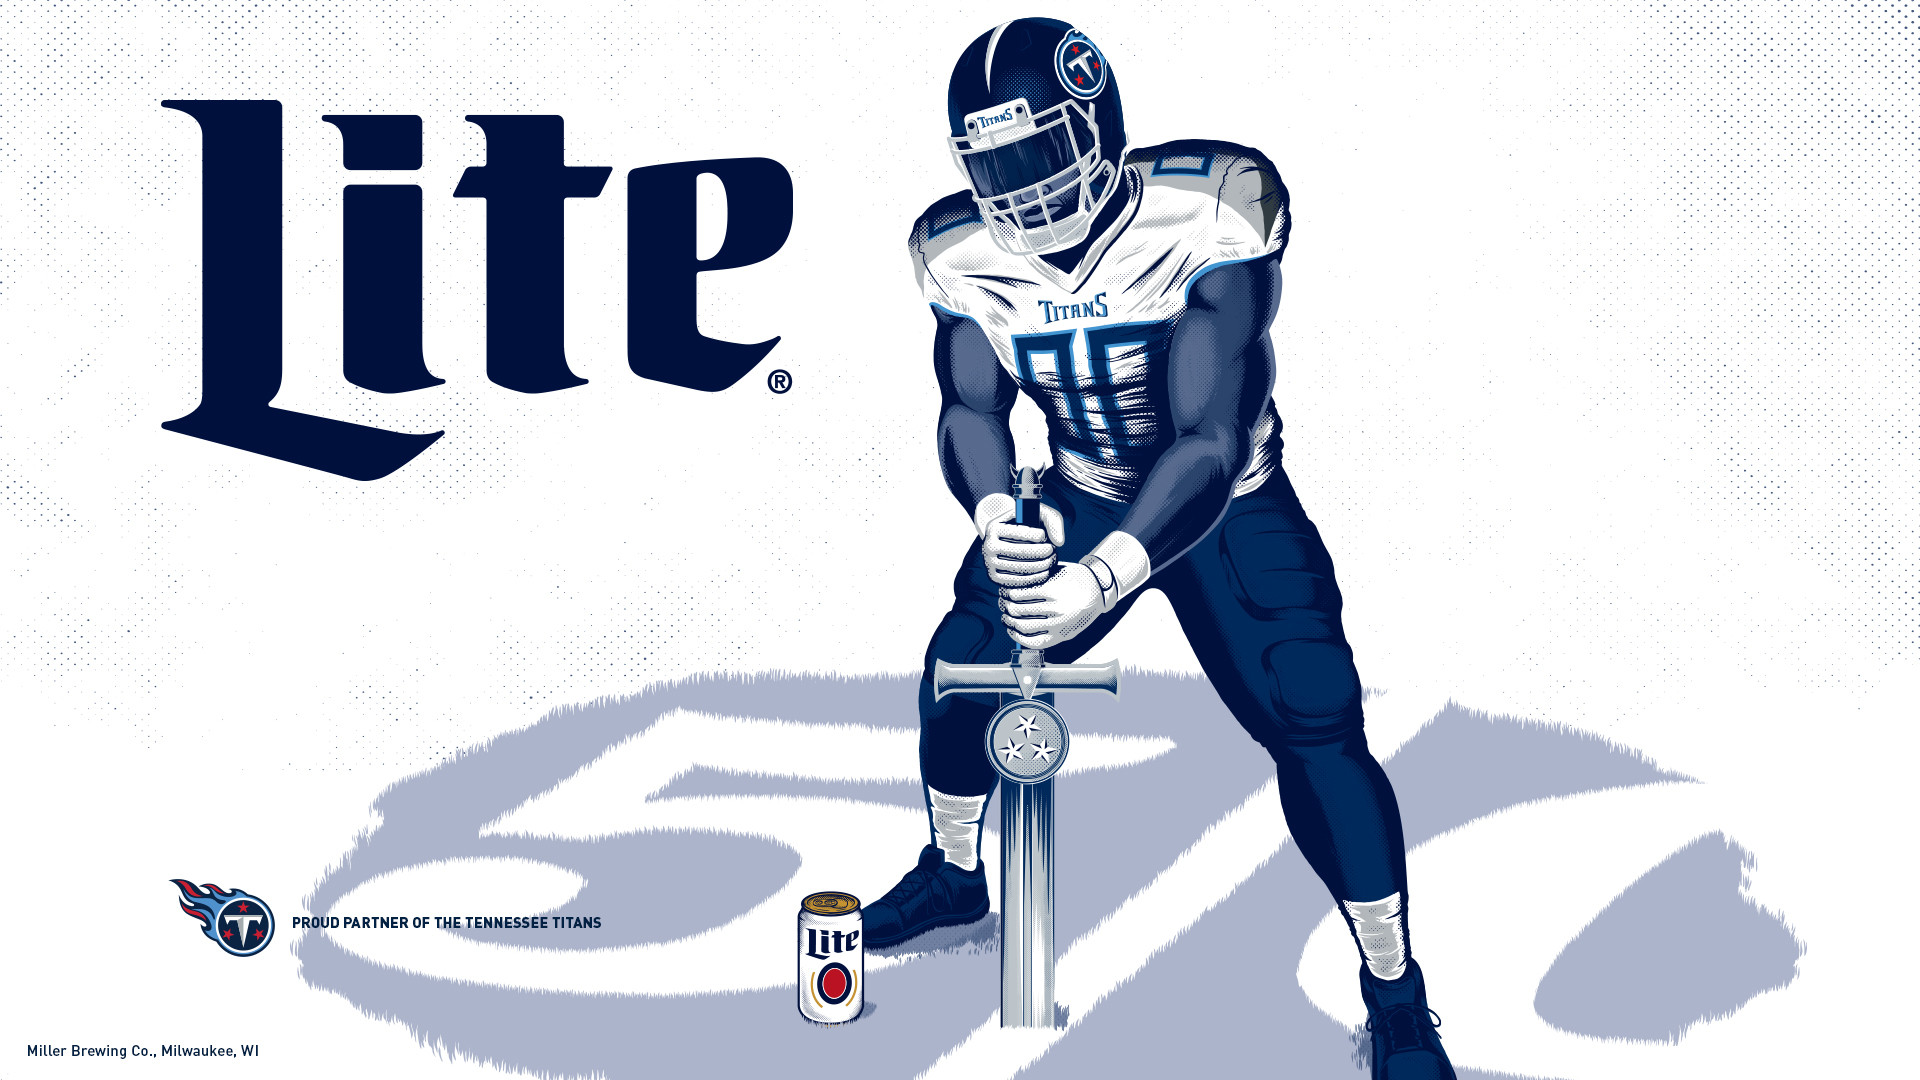 Res: 1920x1080, ... Tennessee Titans wallpaper or poster. MOBILE DESKTOP PRINT*